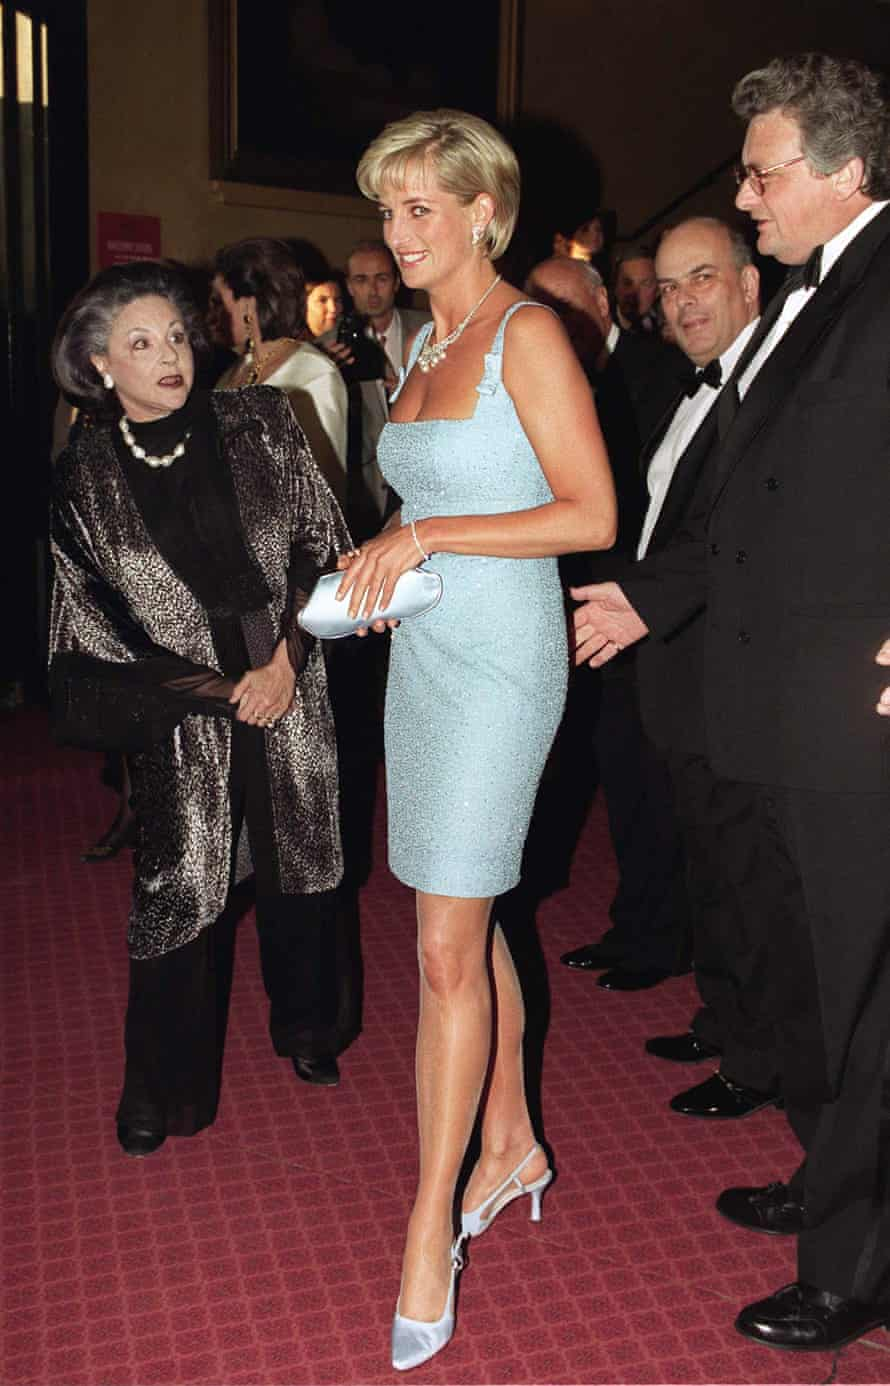 Diana attends a performance of Swan Lake at the Royal Albert Hall in west London. She is wearing a Jacques Azagury dress and Jimmy Choo slingbacks.